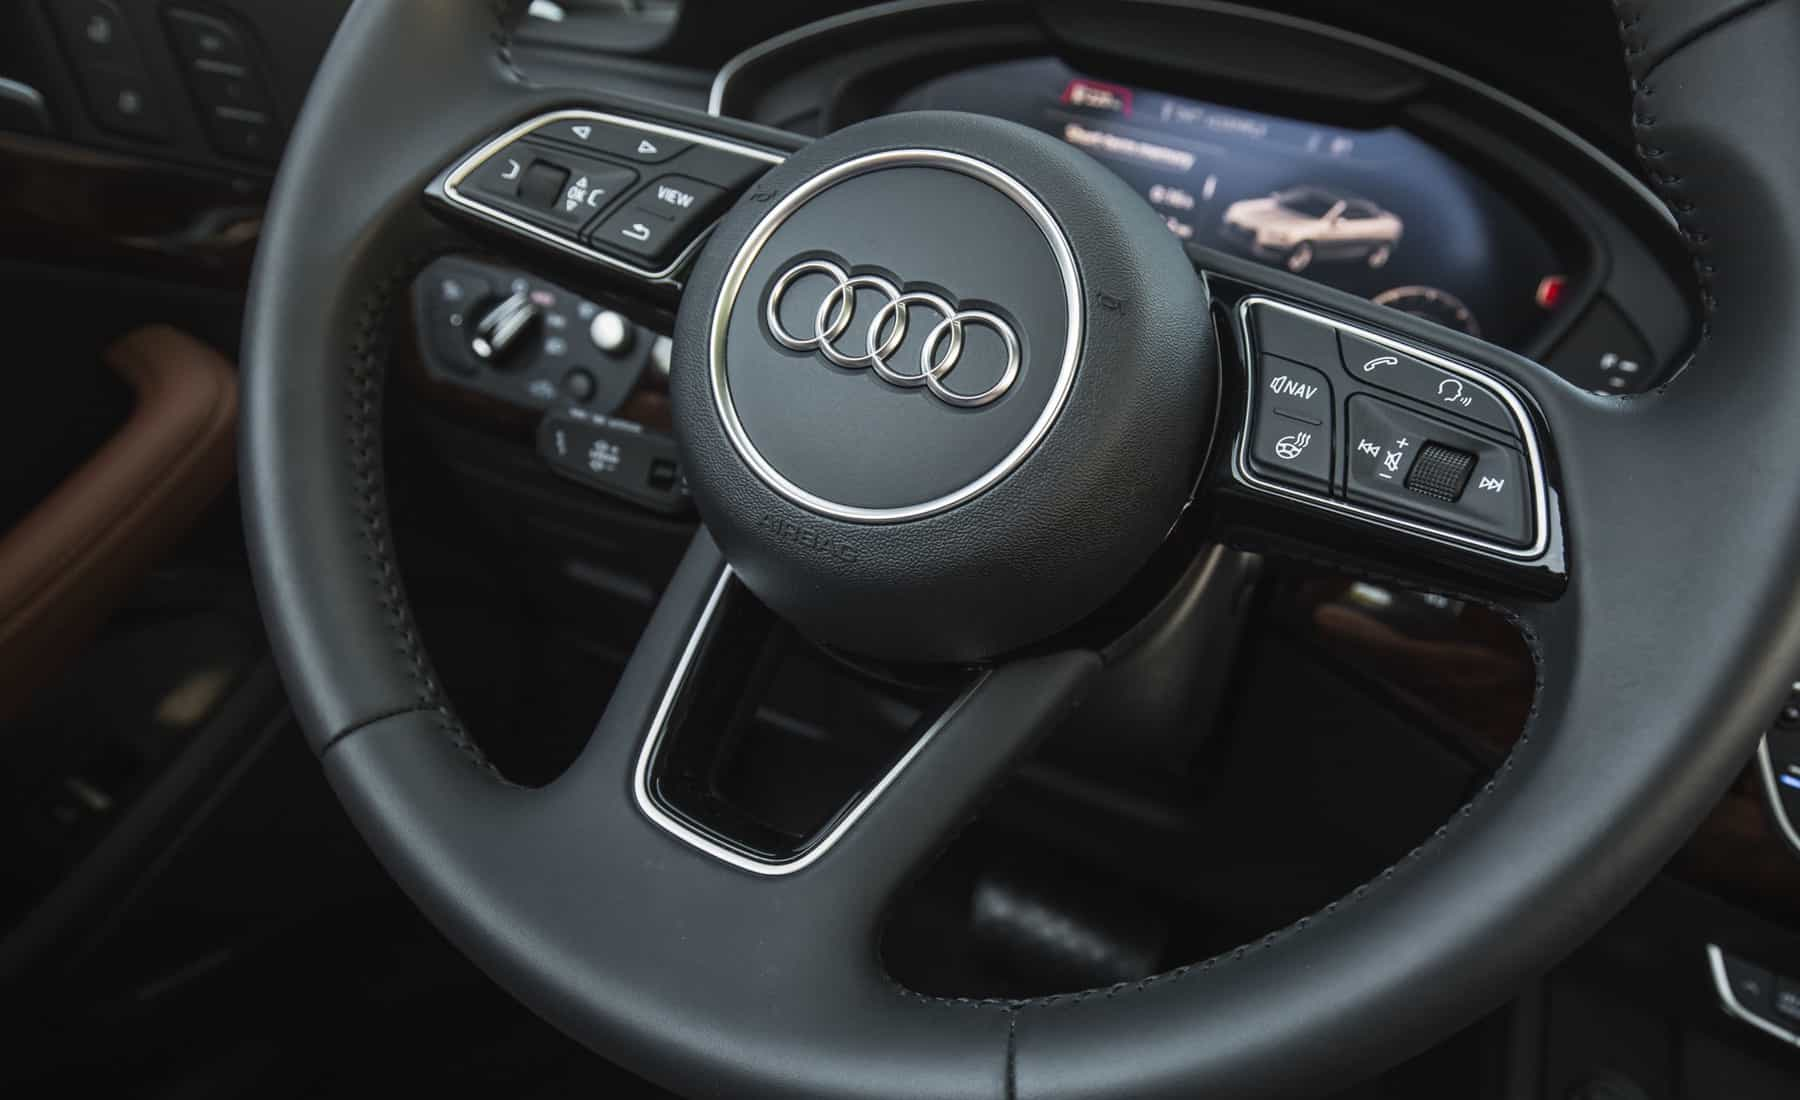 2018 Audi A5 Cabriolet Interior View Steering (Photo 35 of 45)